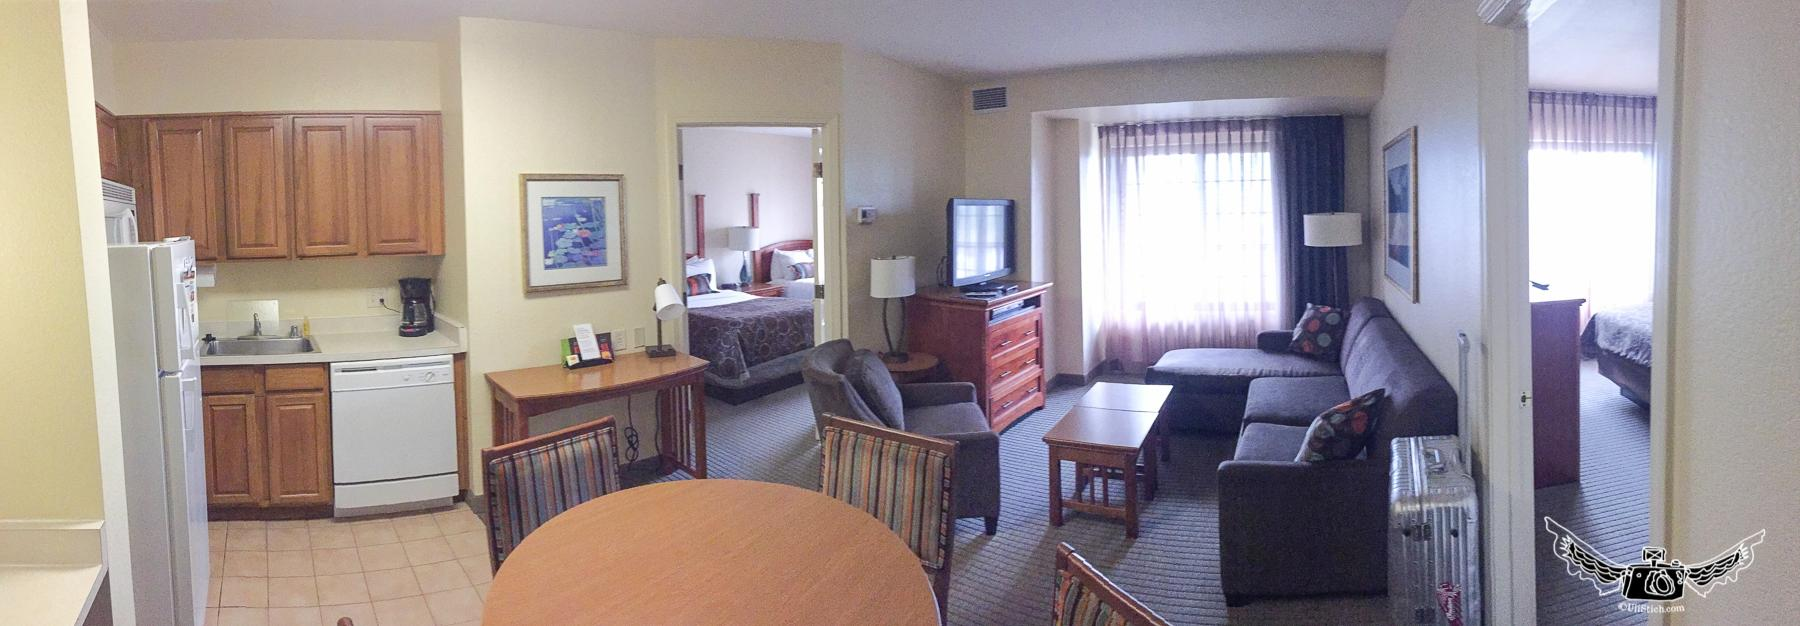 Staybridge Suites Anaheim (CA) 2018 Hotel Review - Family ...